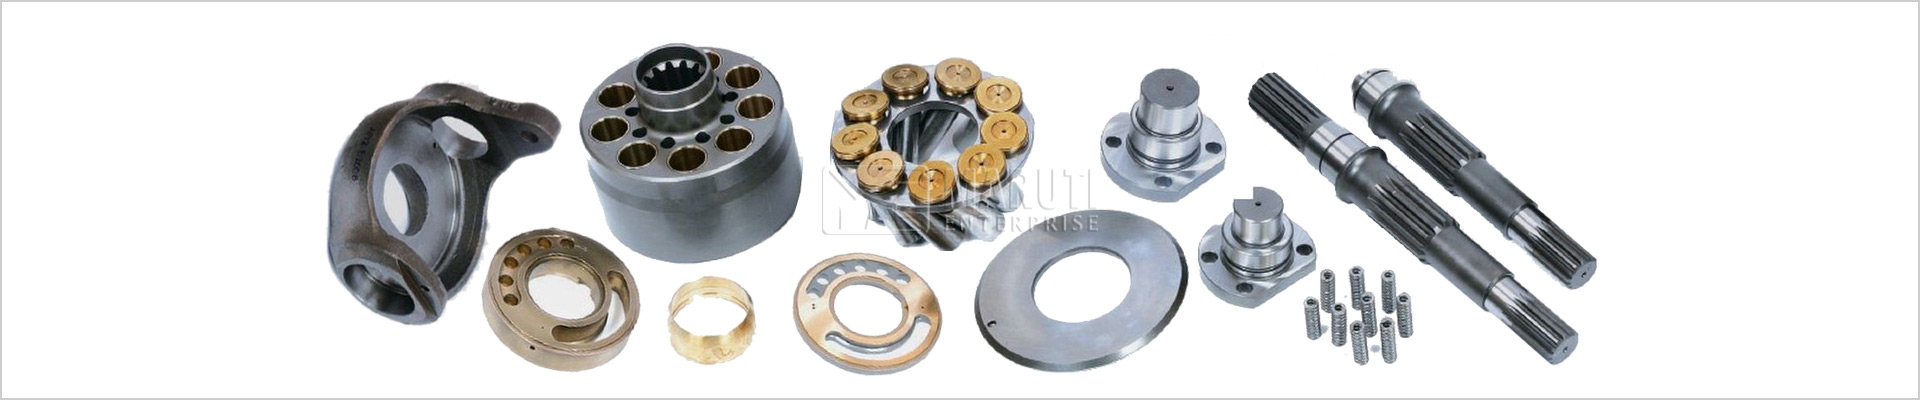 Hydraulic piston pump rotary kit importer in jamnagar gujarat india